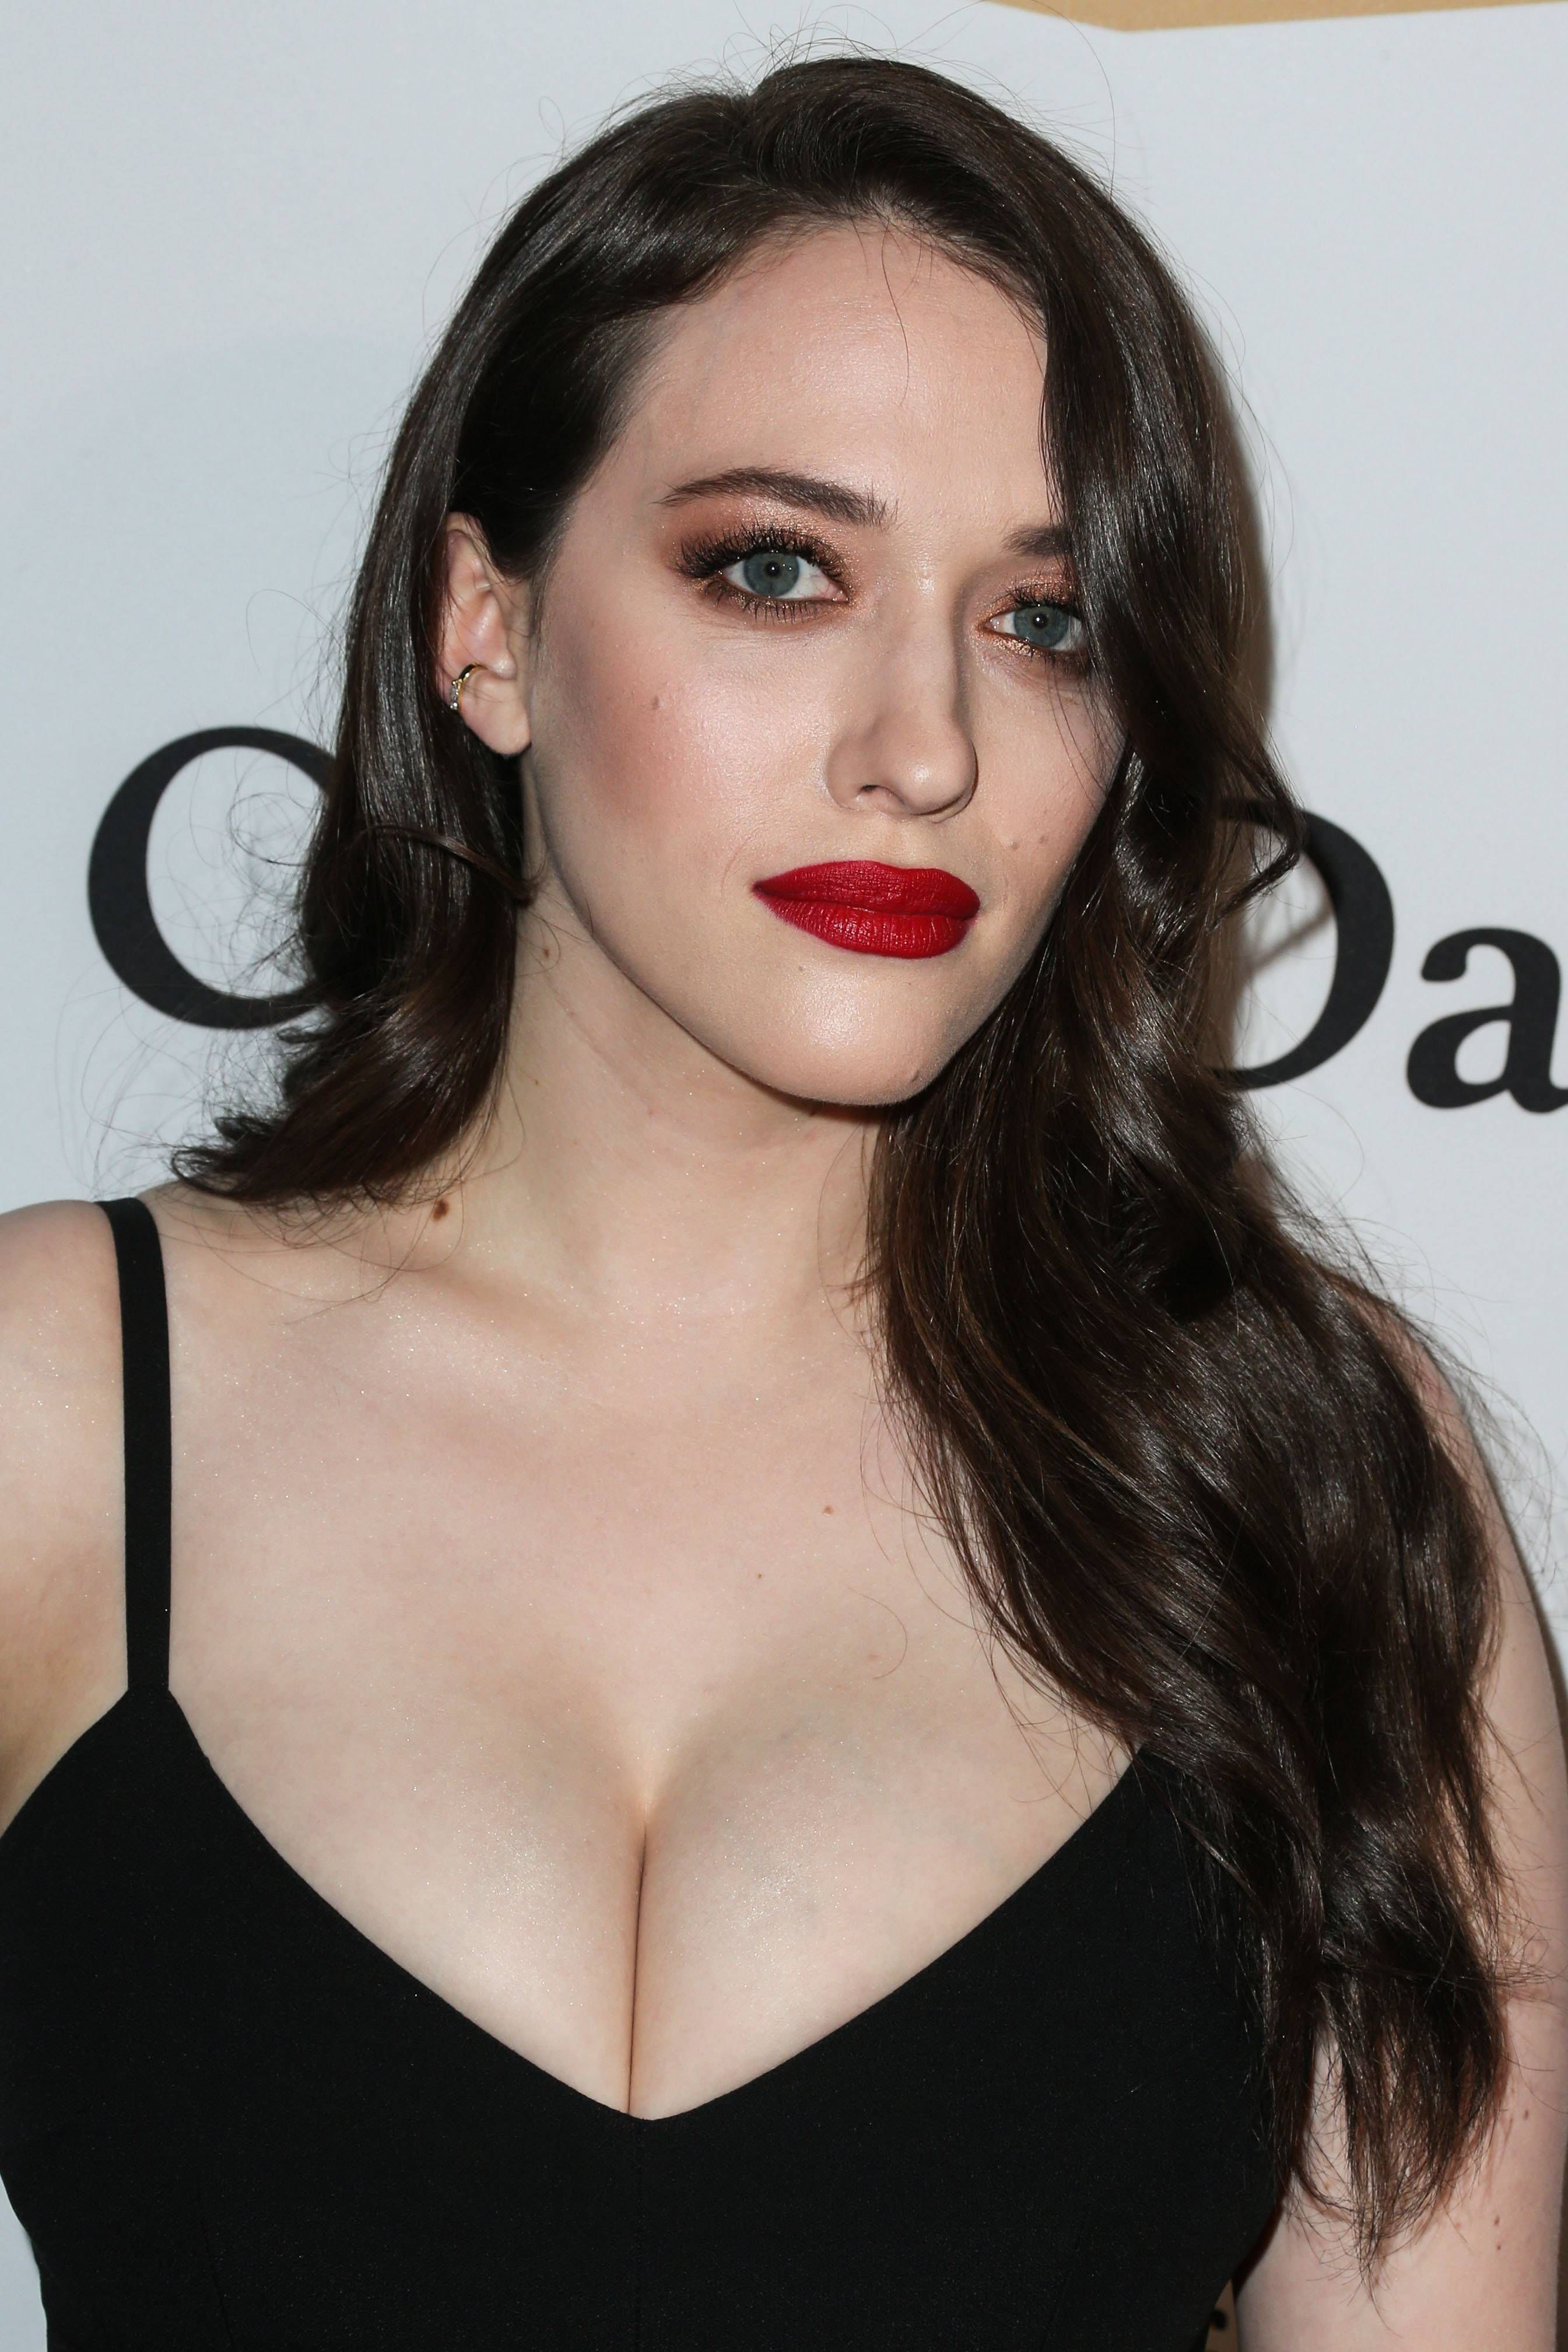 Kat Dennings nudes (64 foto and video), Tits, Leaked, Twitter, see through 2019